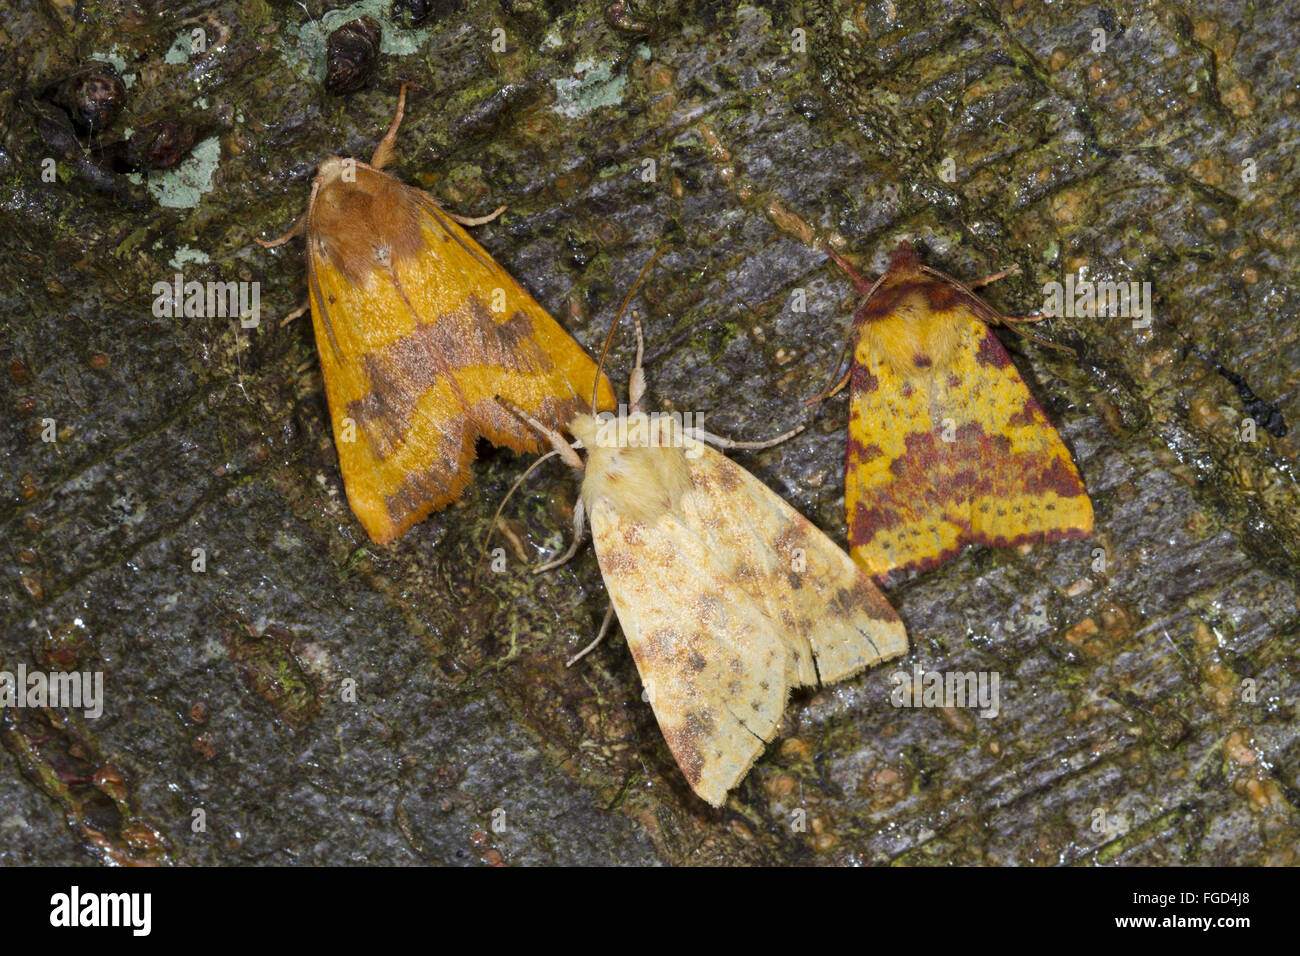 Centre-barred Sallow (Atethmia centrago) adult, The Sallow (Cirrhia icteritia) adult, and Pink-barred Sallow (Xanthia - Stock Image